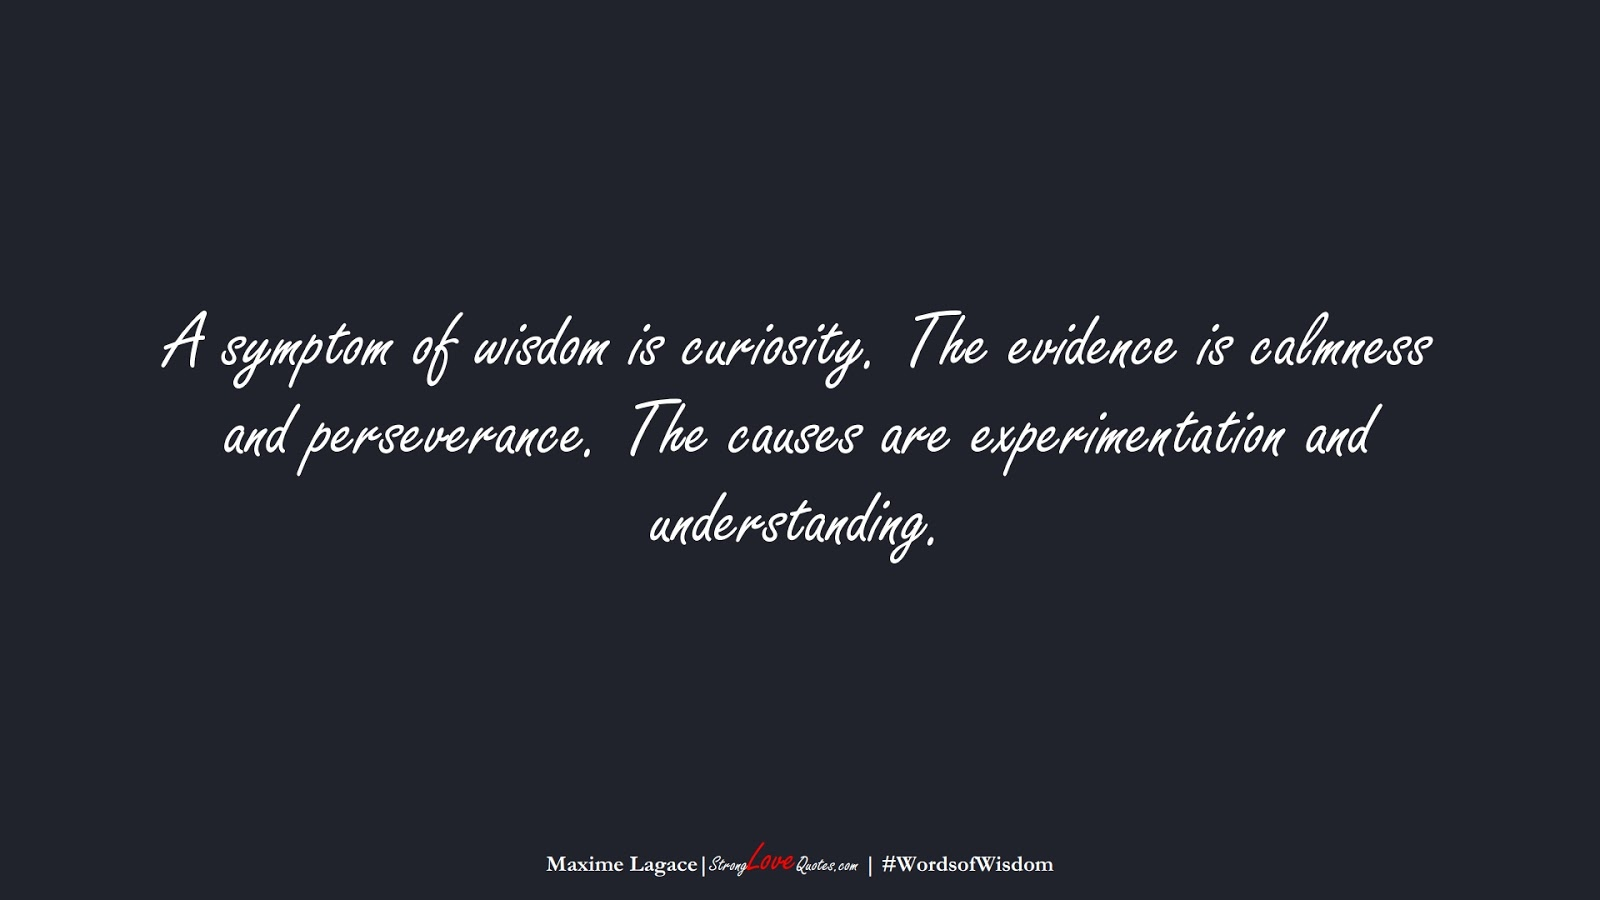 A symptom of wisdom is curiosity. The evidence is calmness and perseverance. The causes are experimentation and understanding. (Maxime Lagace);  #WordsofWisdom